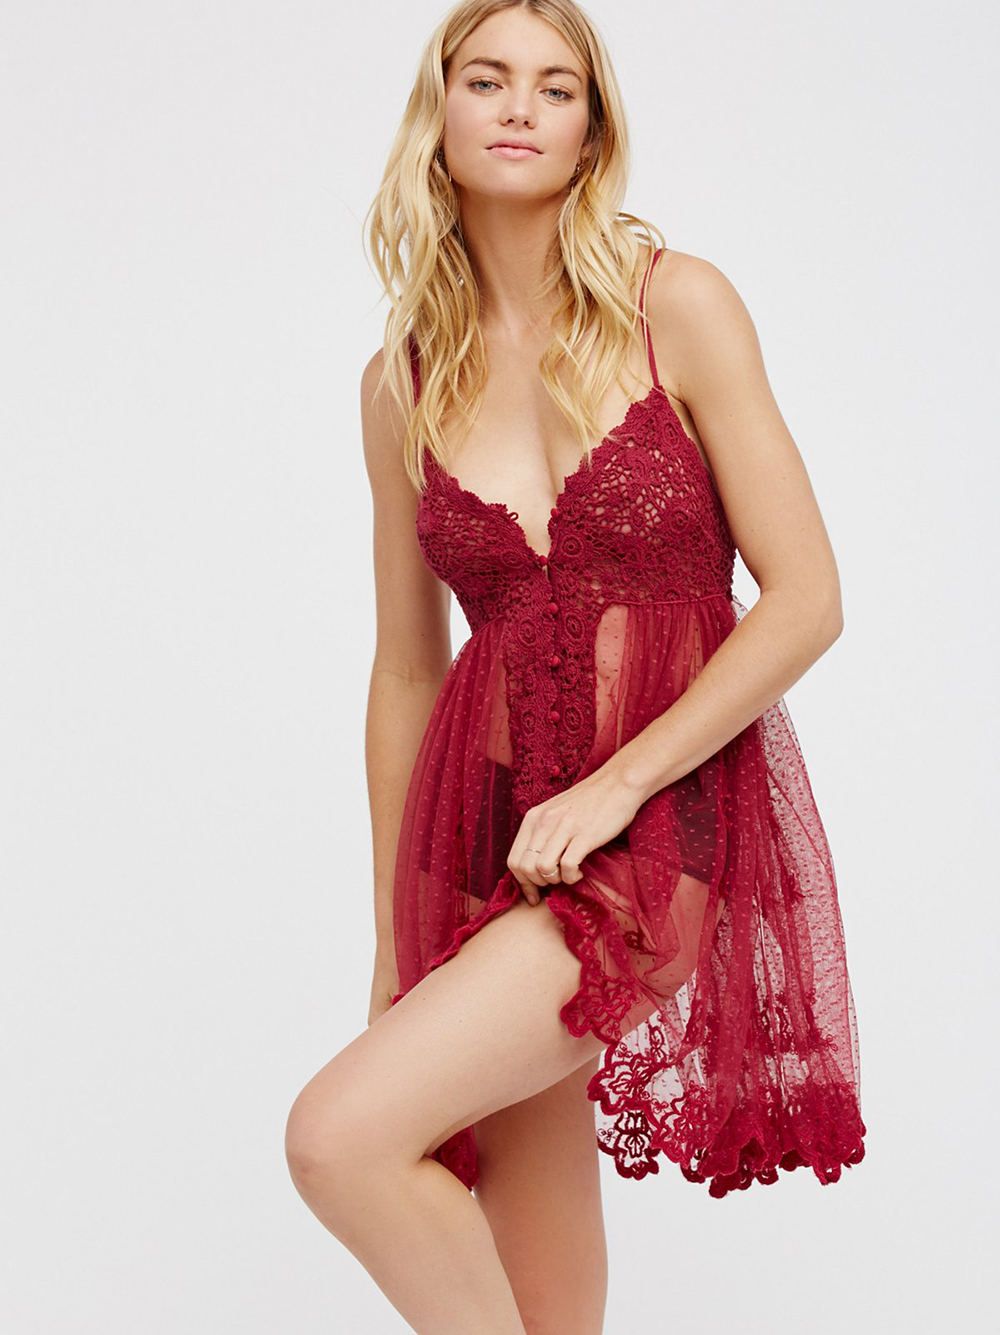 Free People Say Hello to Heaven Slip | Valentine's Day Gift Guide